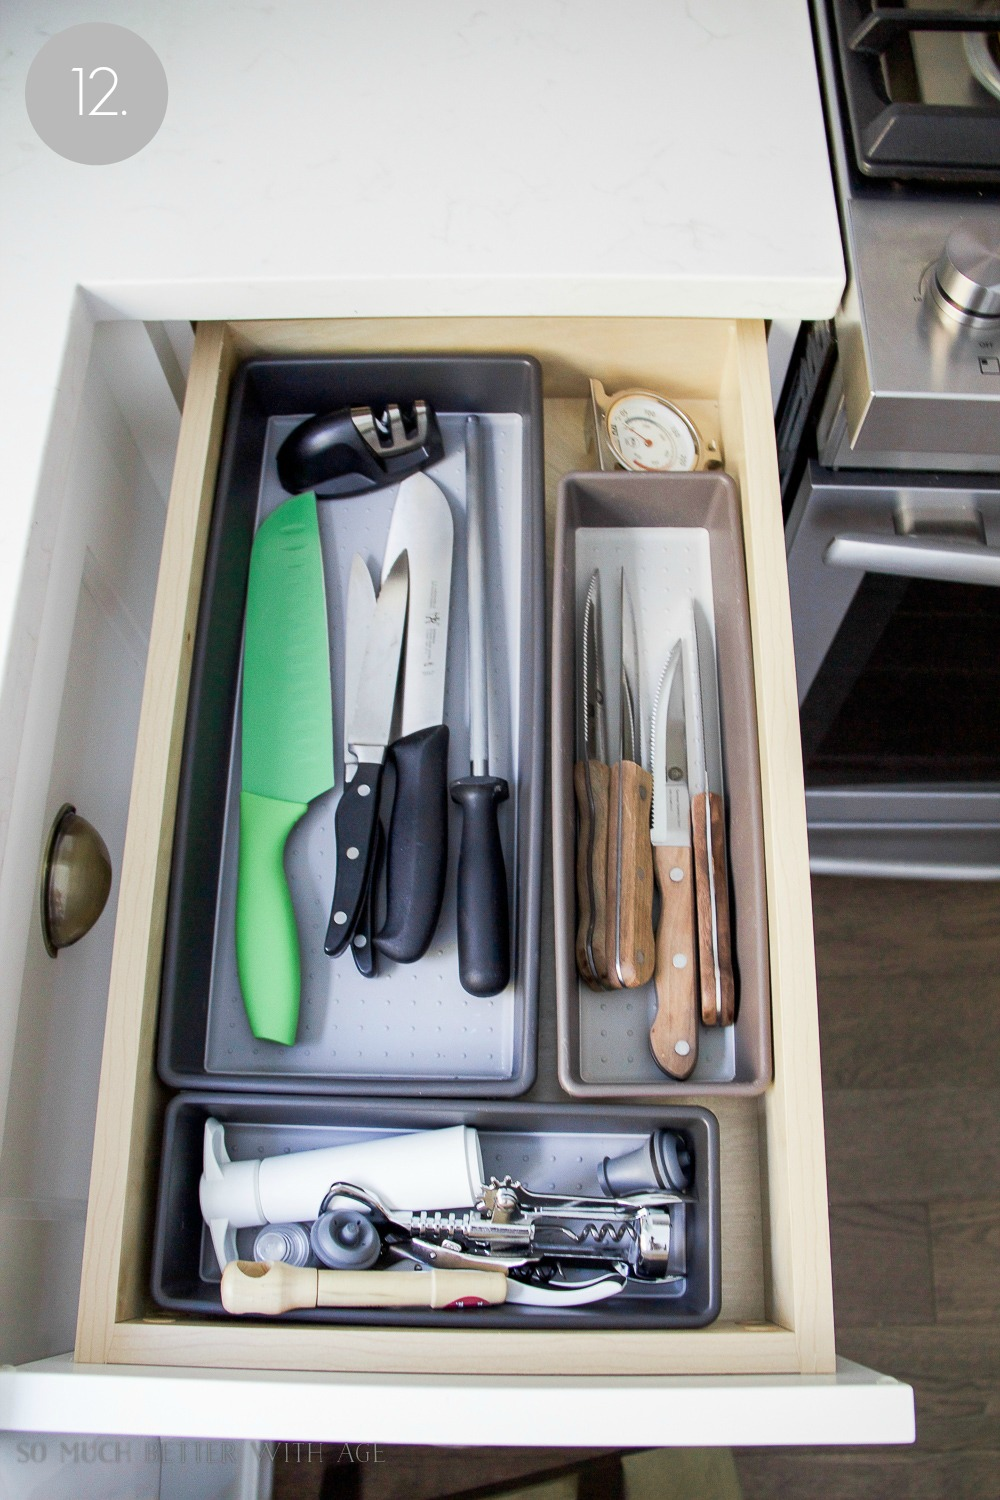 Kitchen cupboard and drawer organization / organizing the knife drawer - So Much Better With Age